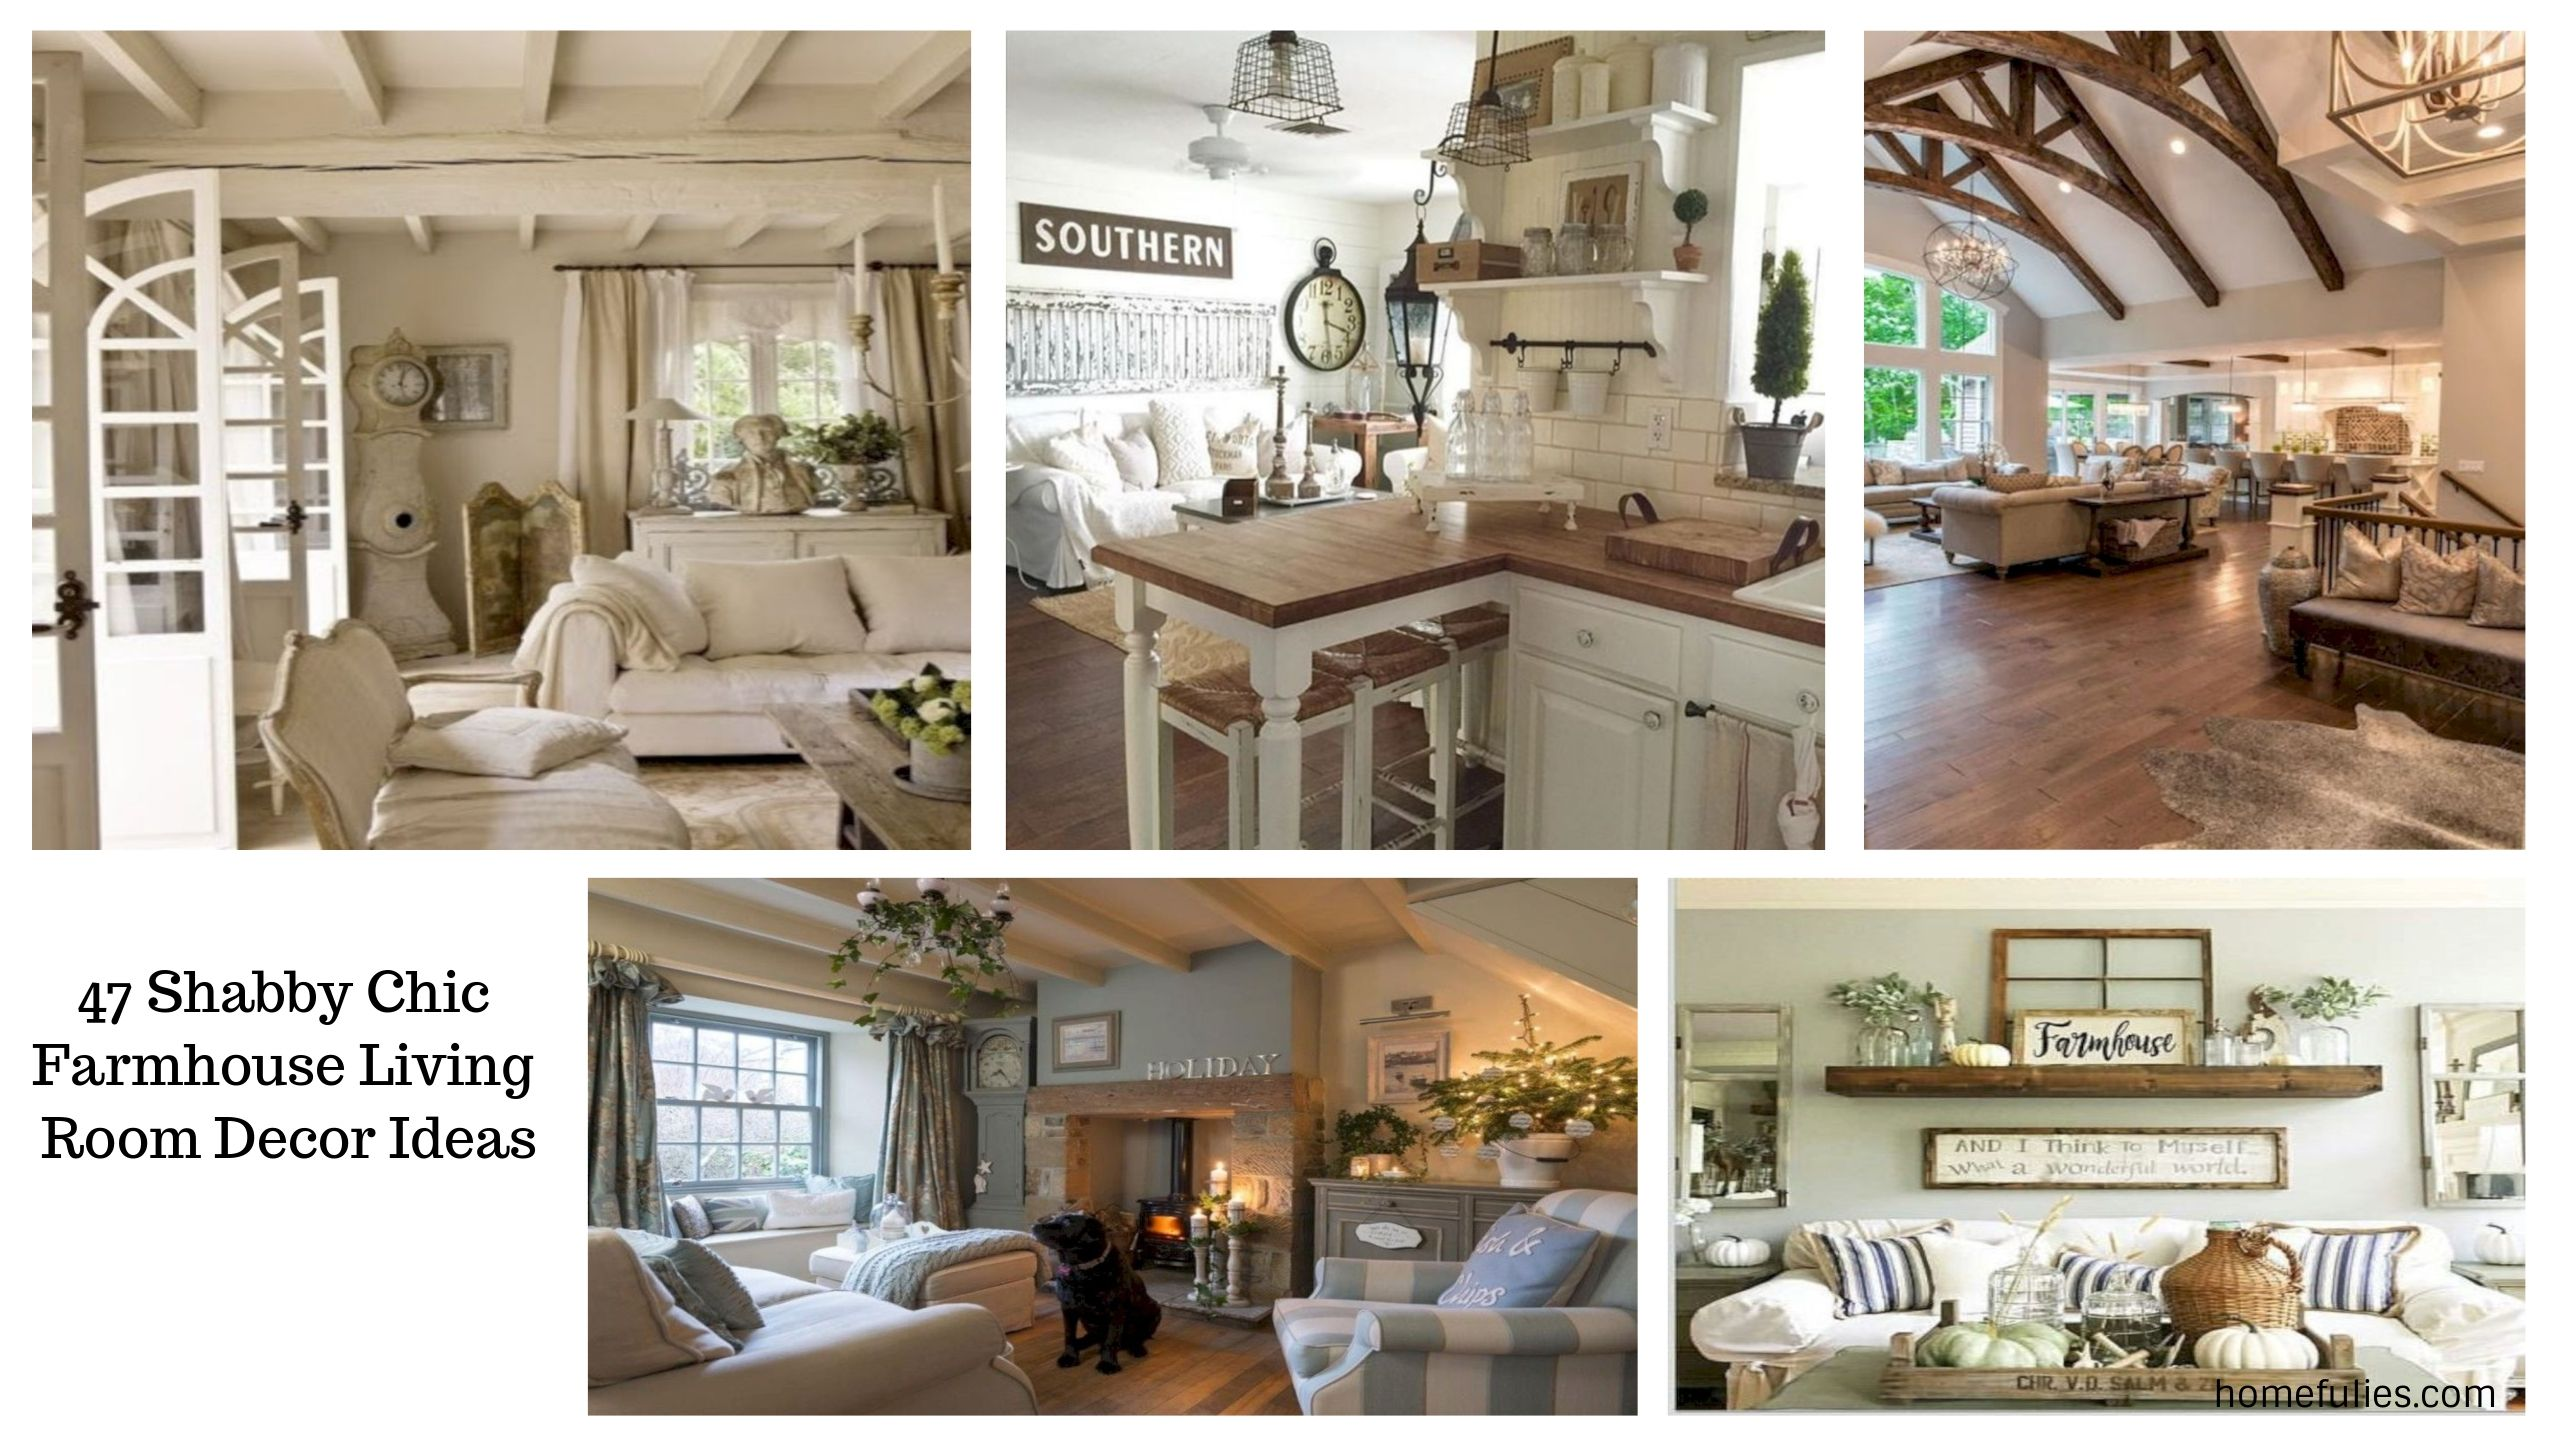 47 Shabby Chic Farmhouse Living Room Decor Ideas  Homefuliescom